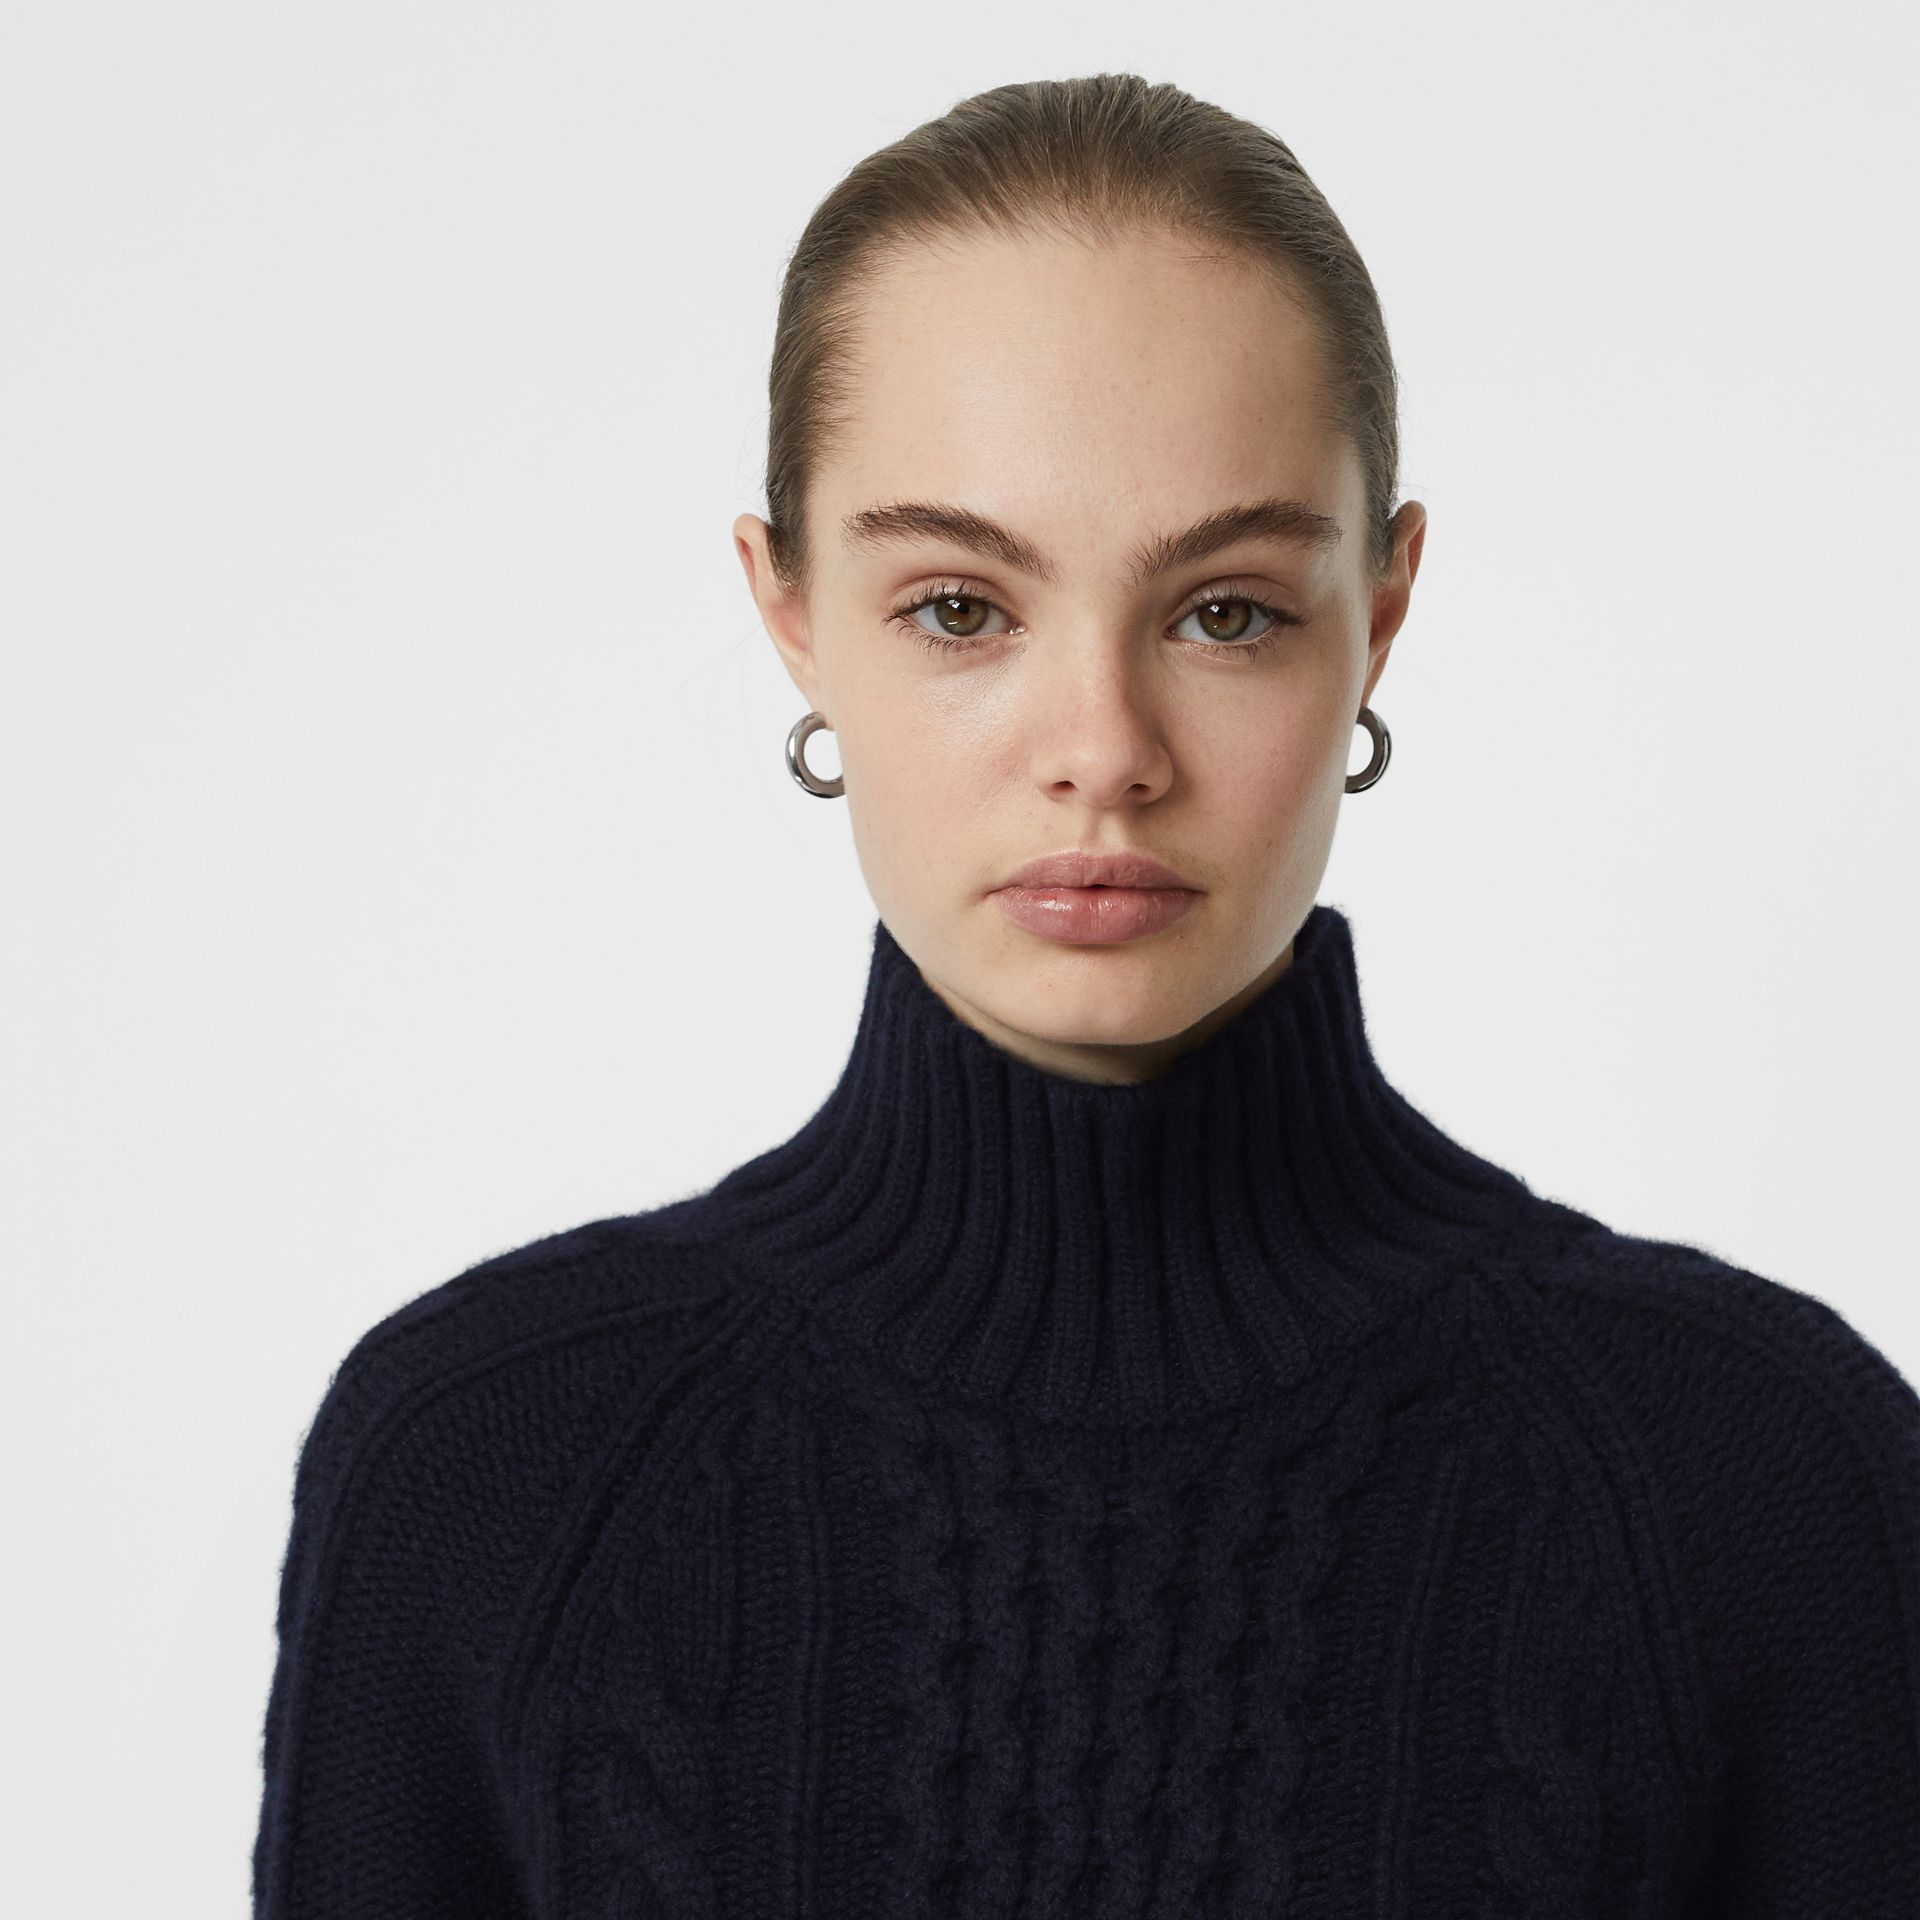 Cable Knit Cashmere Turtleneck Sweater in Navy - Women | Burberry - gallery image 1